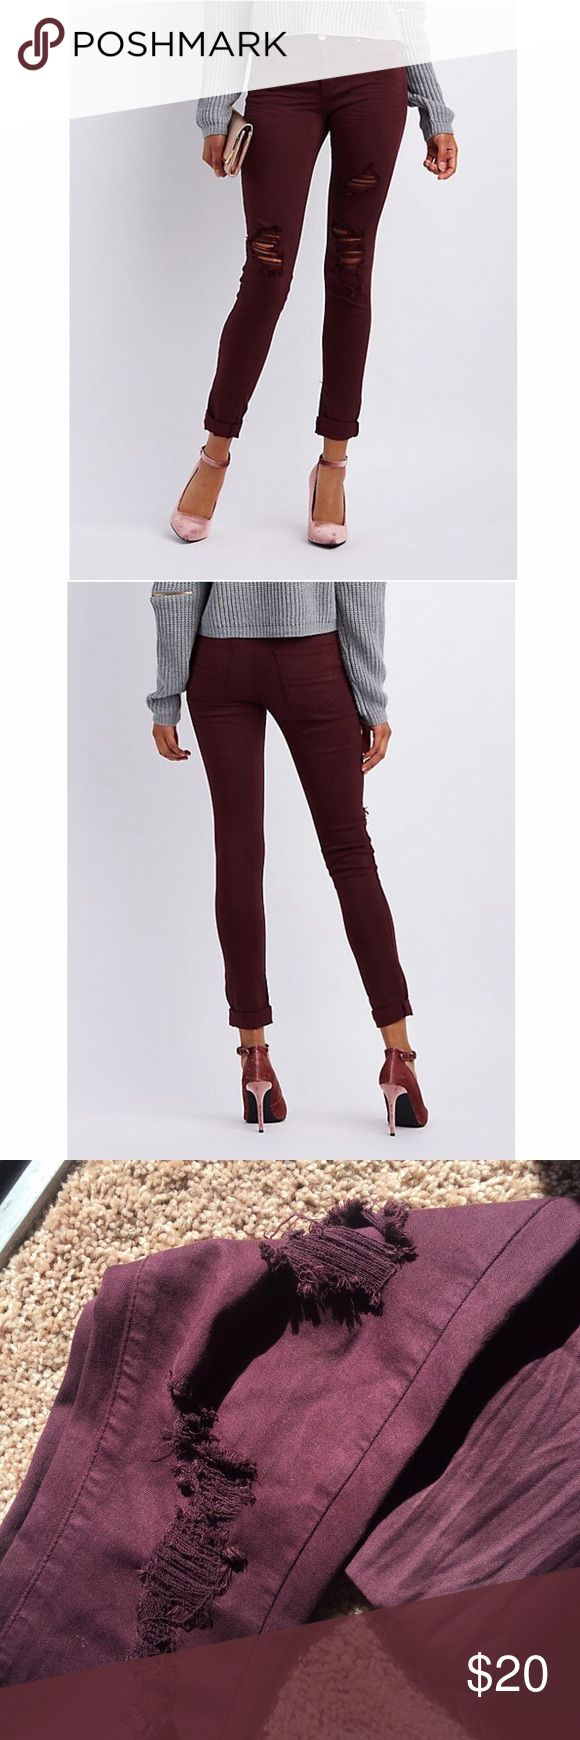 "Refuge Skinny Boyfriend Jeans - Burgundy Excellent condition! Ripped up knees, ankles are looser so you can roll them up. Color is ""Winetasting"". Fits a large 2 Charlotte Russe Jeans Skinny"